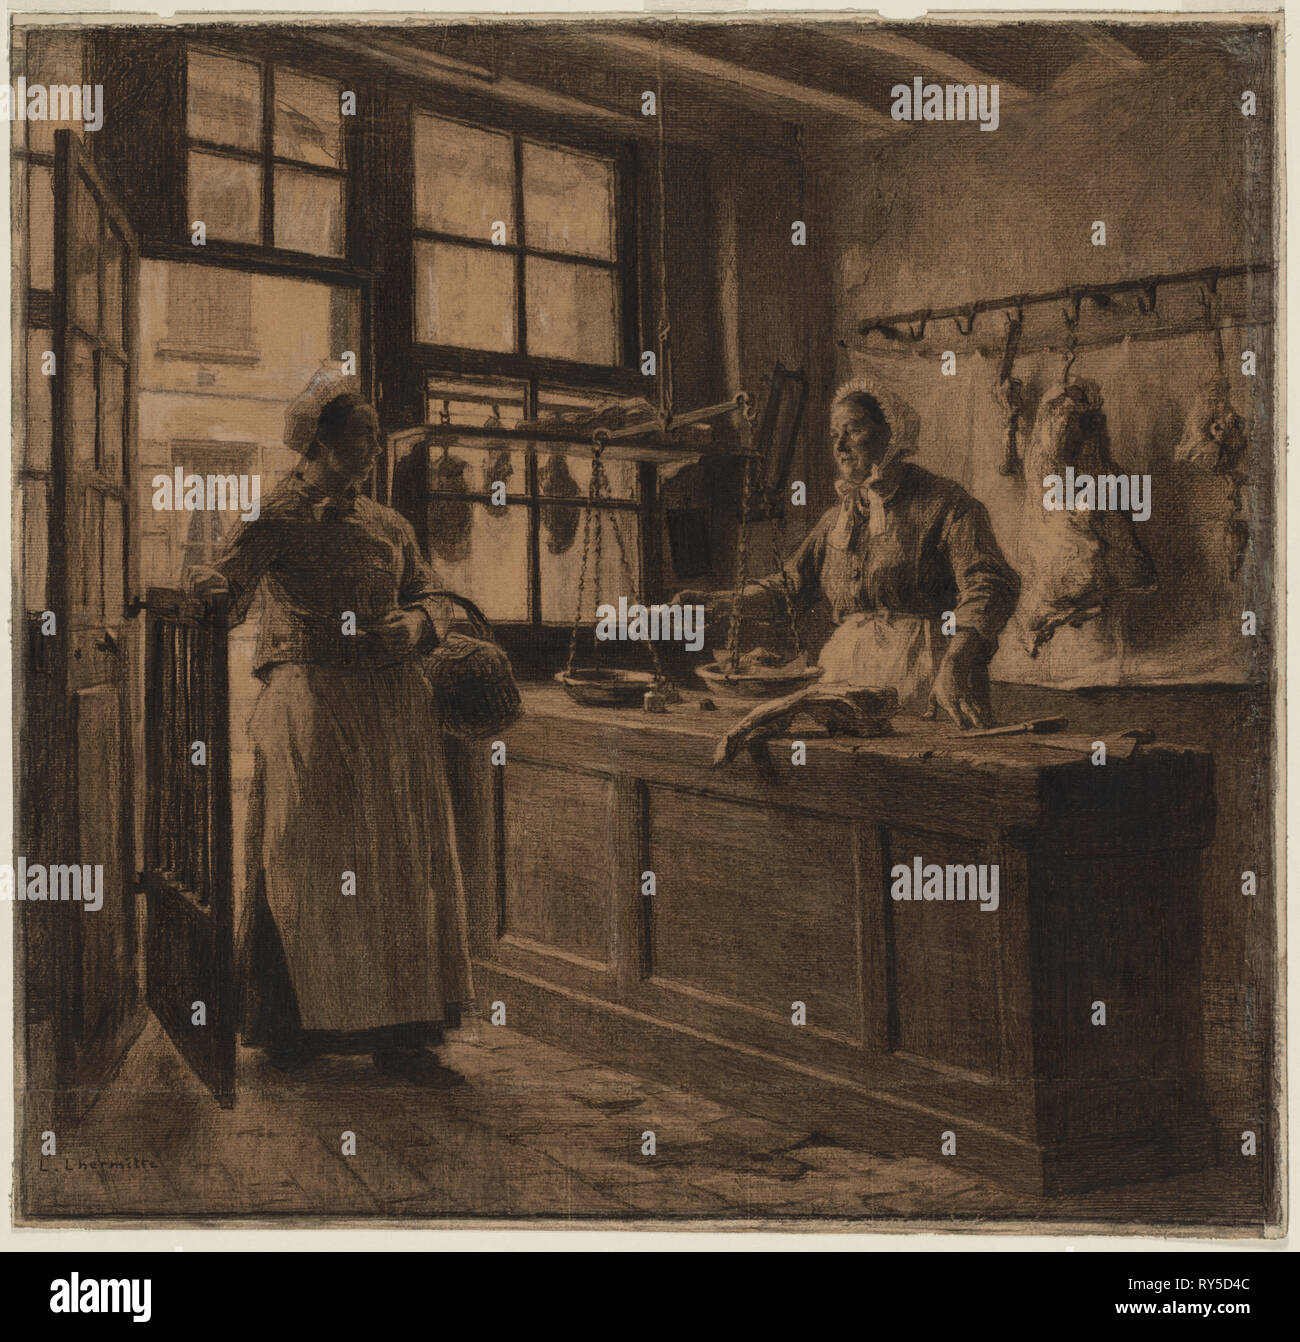 Interior of a Butcher Shop, c. 1881. Léon Augustin Lhermitte (French, 1844-1925). Charcoal and black chalk heightened with white chalk (media continue onto secondary support); sheet: 55.7 x 57.2 cm (21 15/16 x 22 1/2 in.); secondary support: 56.1 x 58.4 cm (22 1/16 x 23 in Stock Photo